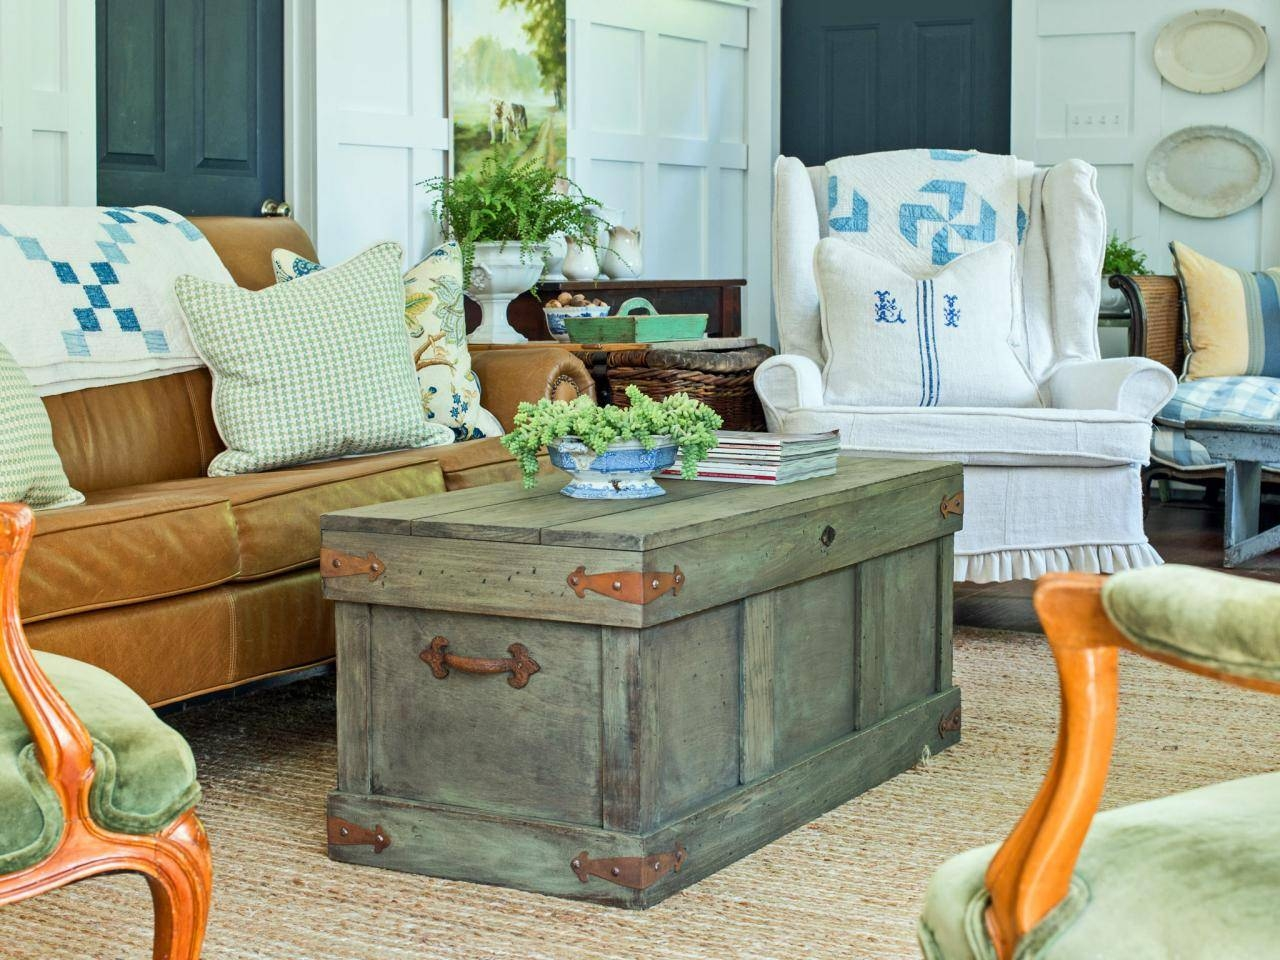 How To Construct A Rustic Trunk-Style Coffee Table | Hgtv in Rustic Style Coffee Tables (Image 22 of 30)